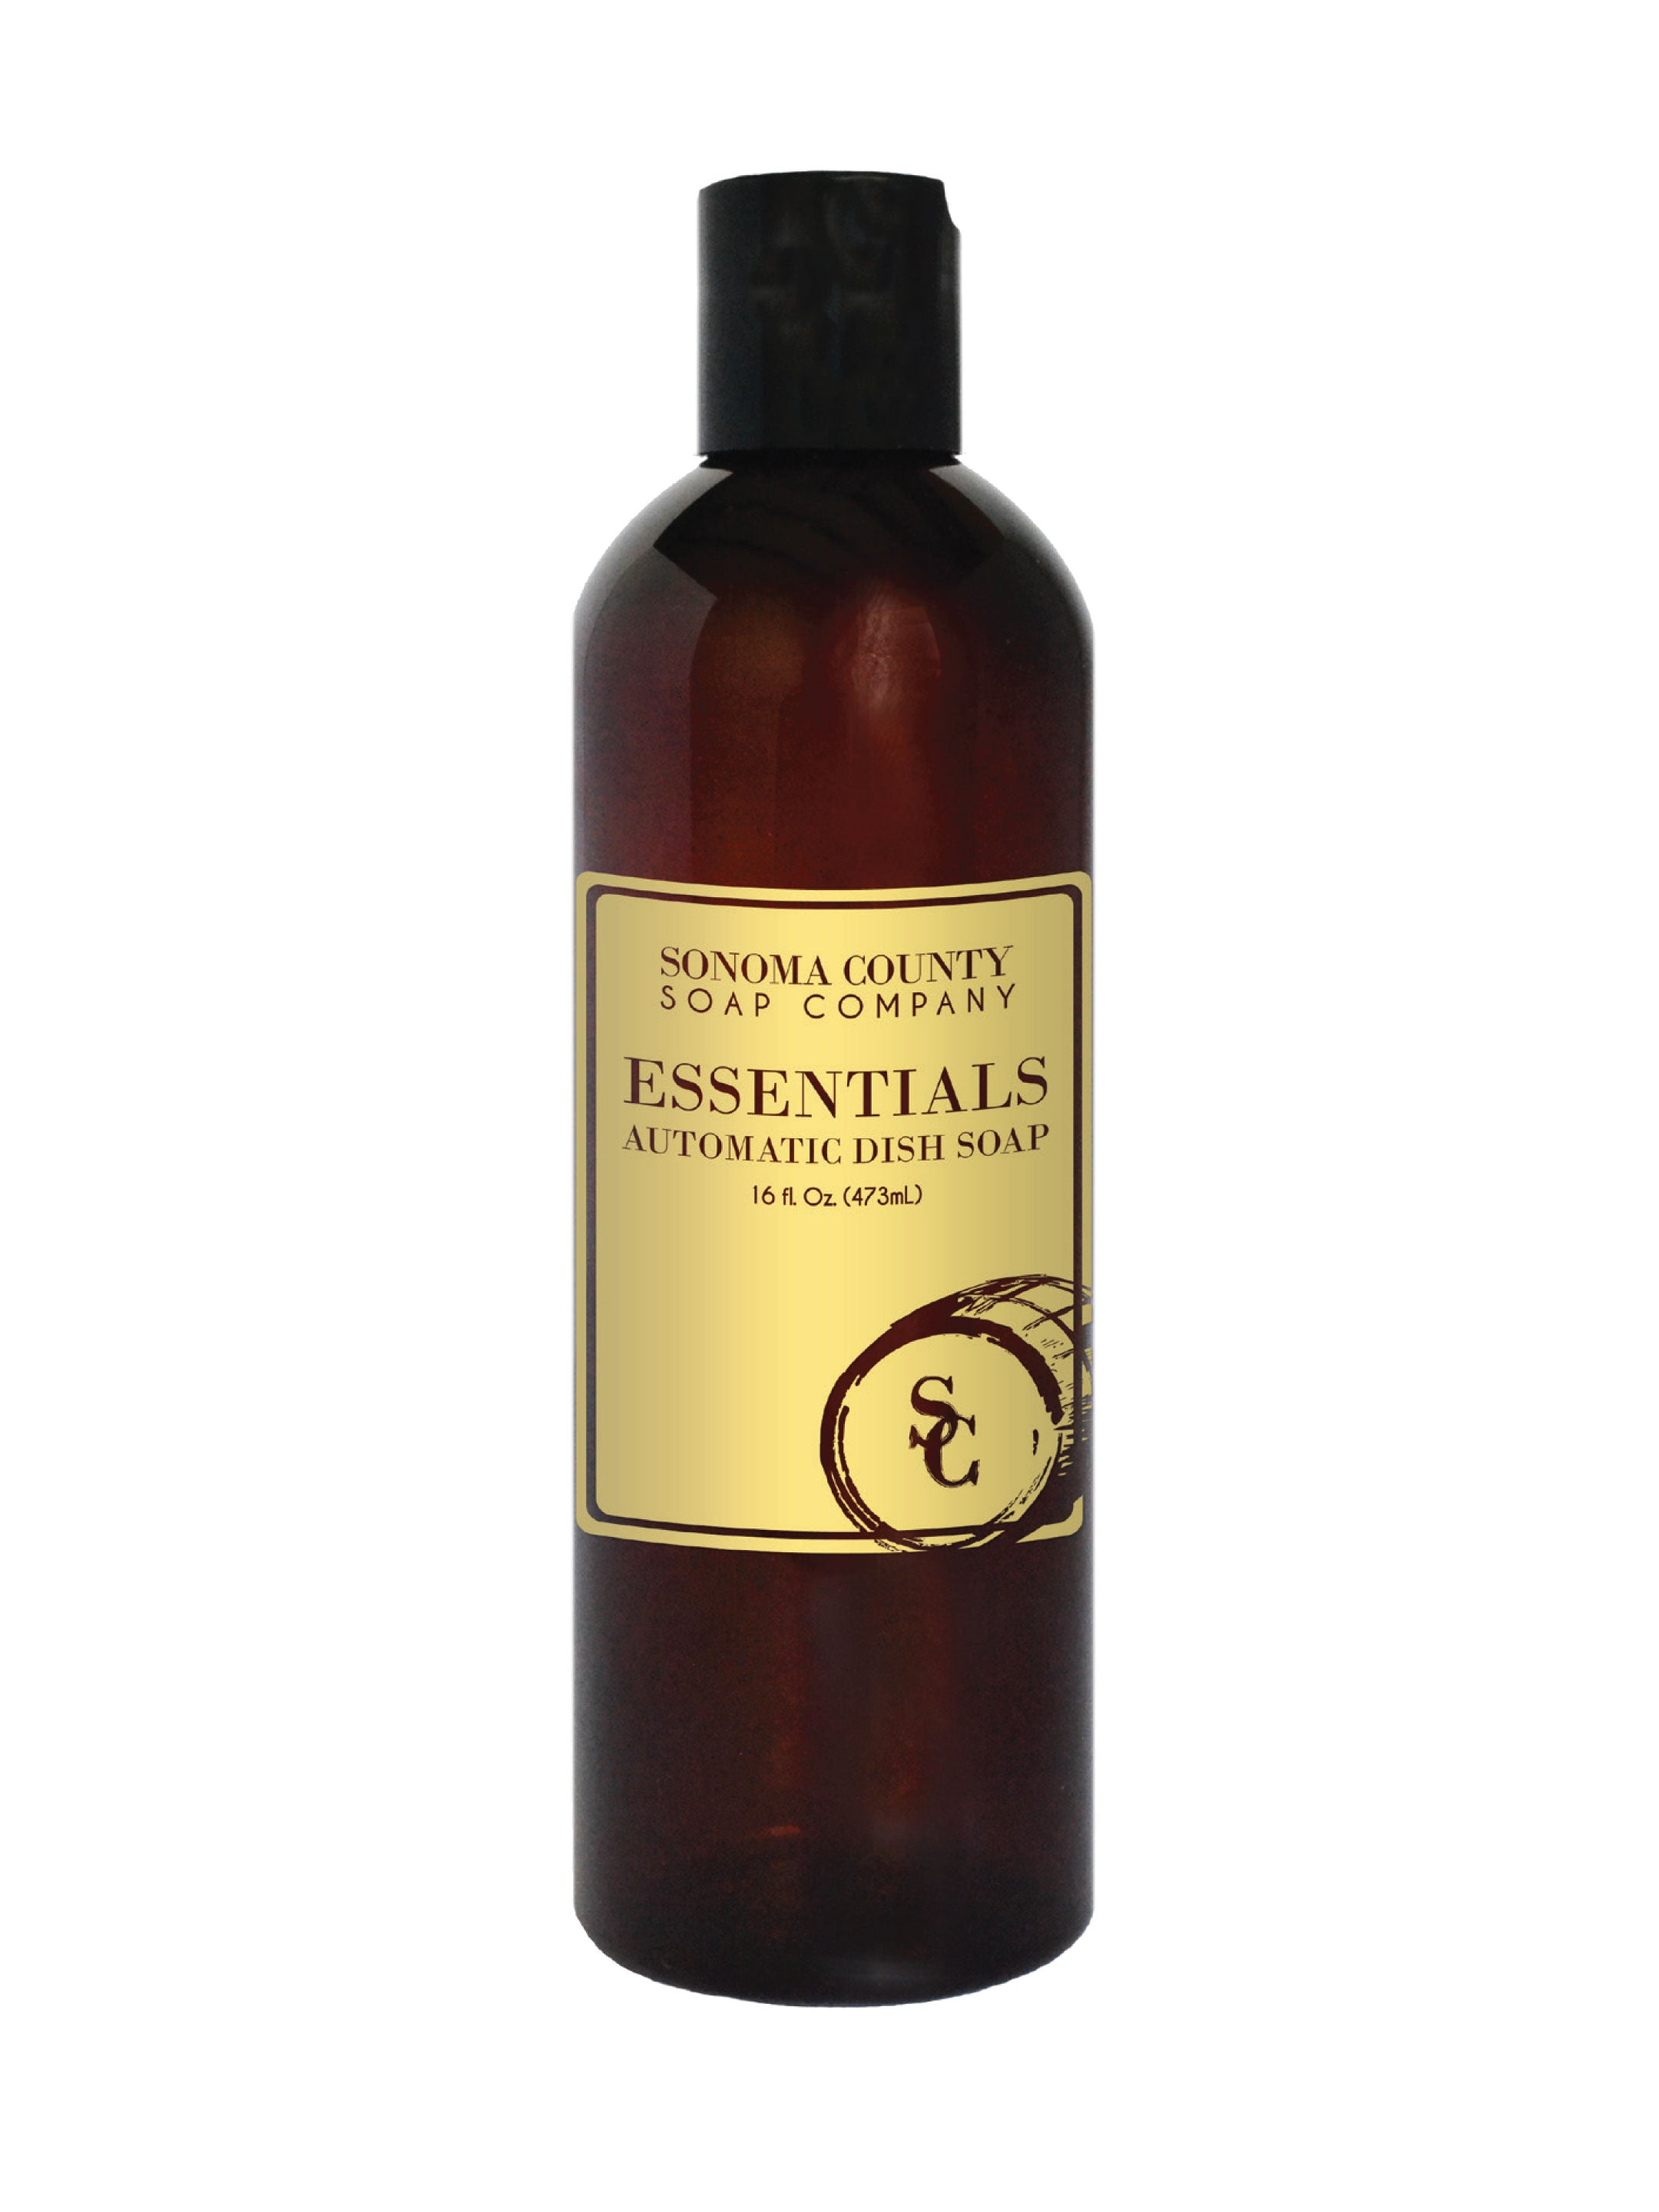 Essentials Automatic Dish Soap - 16 oz.